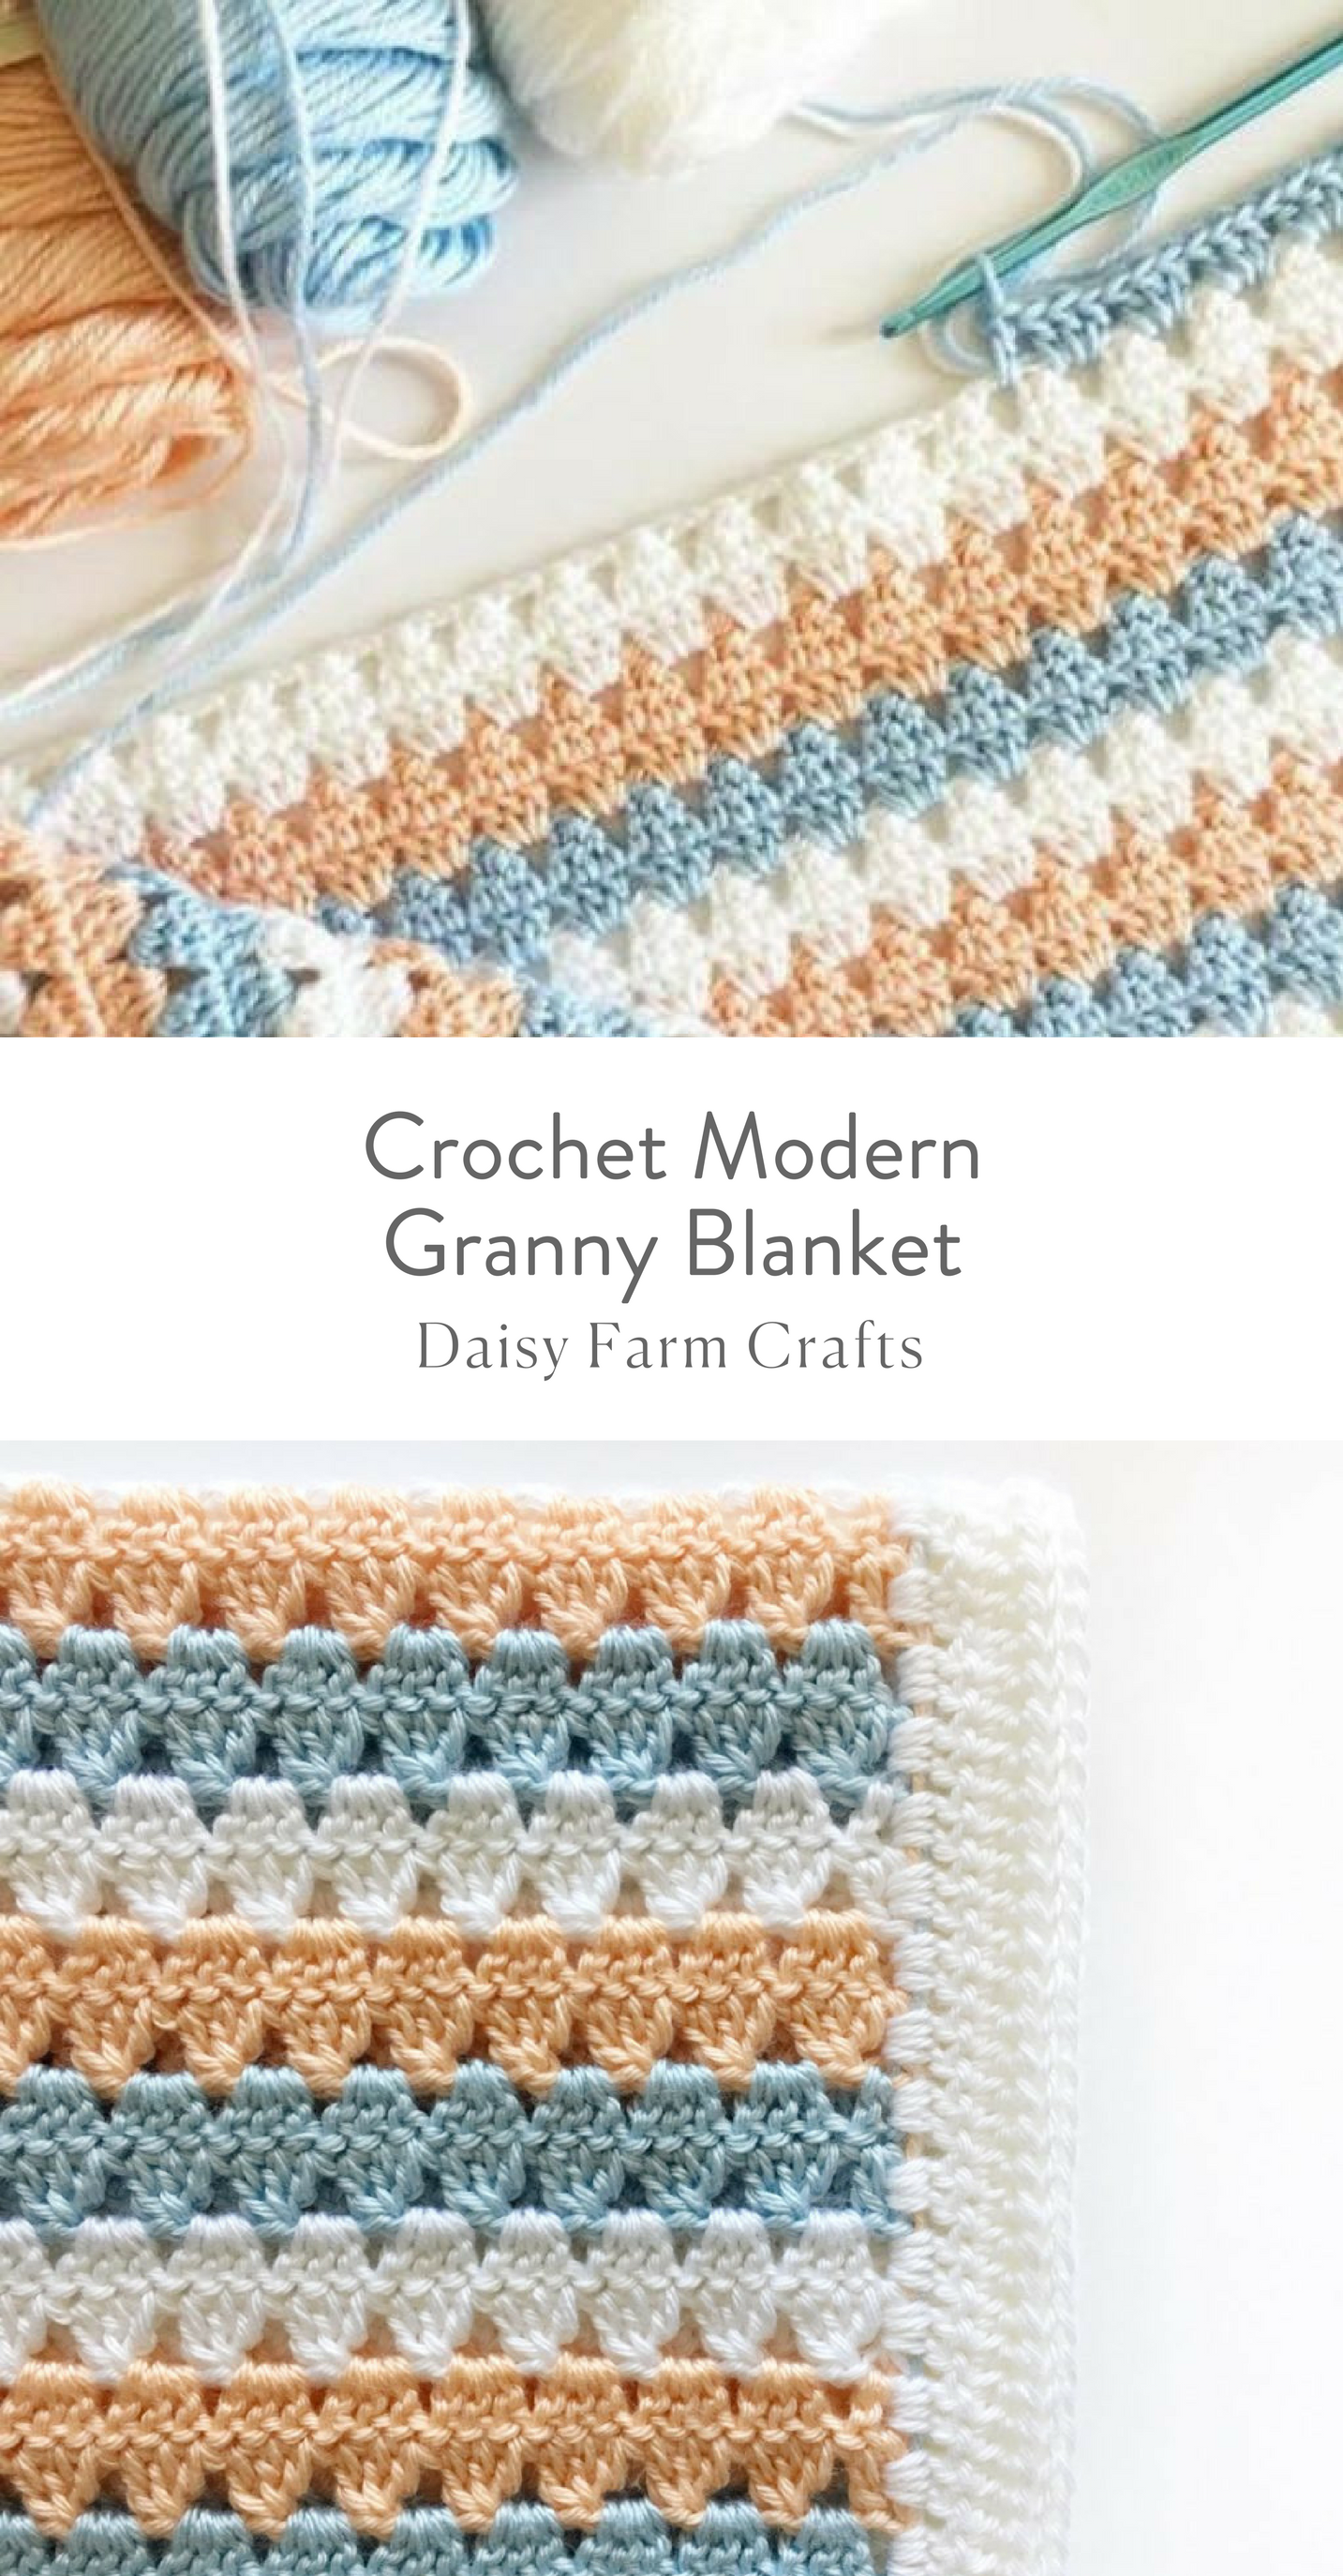 Free Pattern - Crochet Modern Granny Blanket | Projects | Pinterest ...